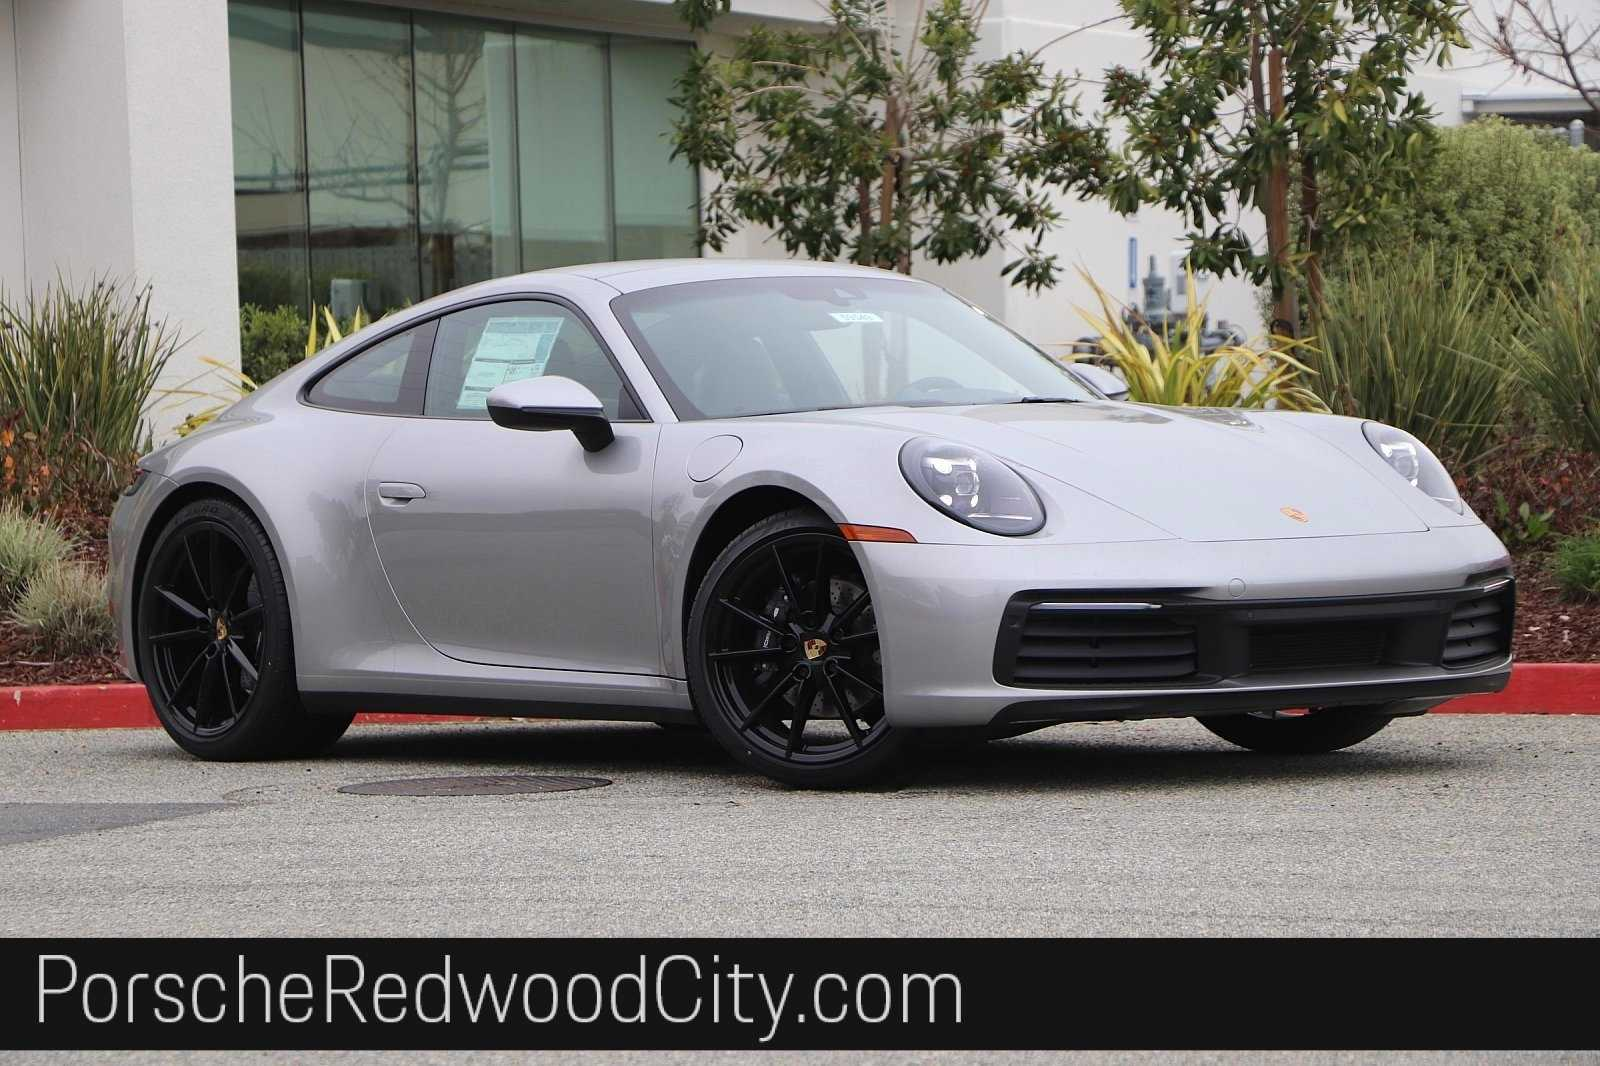 New 2020 Porsche 911 Carrera MSRP WAS: $114,070, NOW: $109,988